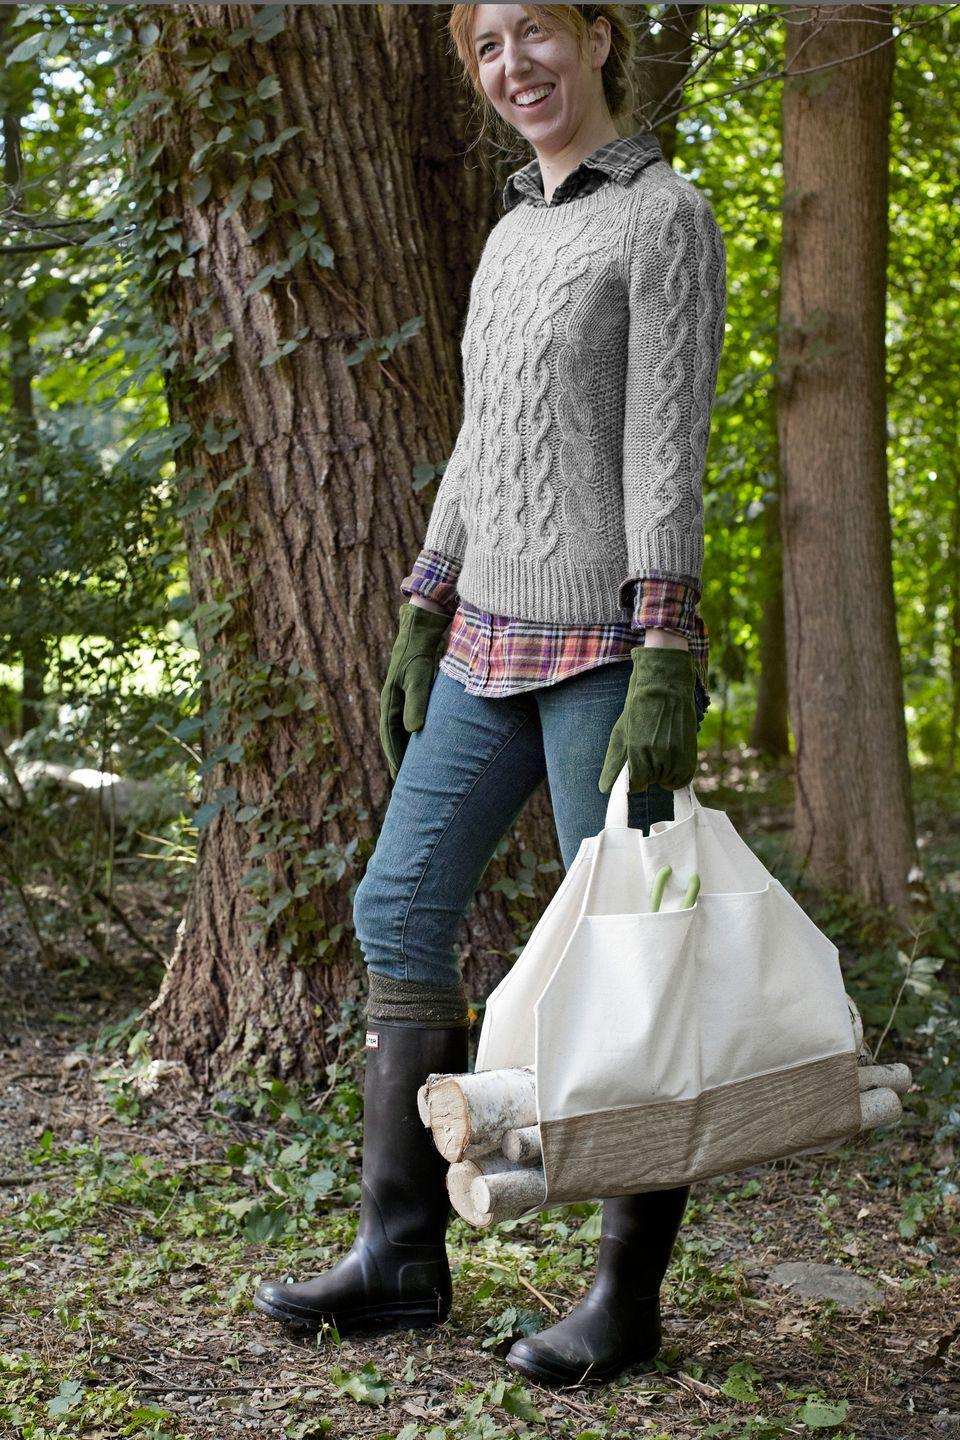 <p>Carry out a seasonal chore in style with a log sling that costs less than $15 to make!</p><p><strong>Step 1:</strong> Turn a canvas bag inside out, then use a seam ripper to undo the gusseted corners. Using scissors, cut the bag along the side seams so that it lays completely flat when open.</p><p><strong>Step 2:</strong> Lay the bag wrong side up. Using a pencil and a ruler, draw and 8 1/2-inch diagonal line across each of the bag's corners. Cut the bag along the lines, as shown; discard corner pieces. Then, fold each cut edge over by 1/4 inch and topstitch in place.</p><p><strong>Step 3:</strong> Cut a piece of faux bois oilcloth that measures 18 1/4''L x 13 1/2W. Flip the bag right side up, then lay the panel across the bag's middle section, as shown. Using bright-orange thread, topstitch the panel in place along its edges.</p><p><strong>Step 4:</strong> Reinforce the handles by folding each strap back on itself. Clamp or pin the strap in place, then stitch it together. Repeat for the second strap.</p>